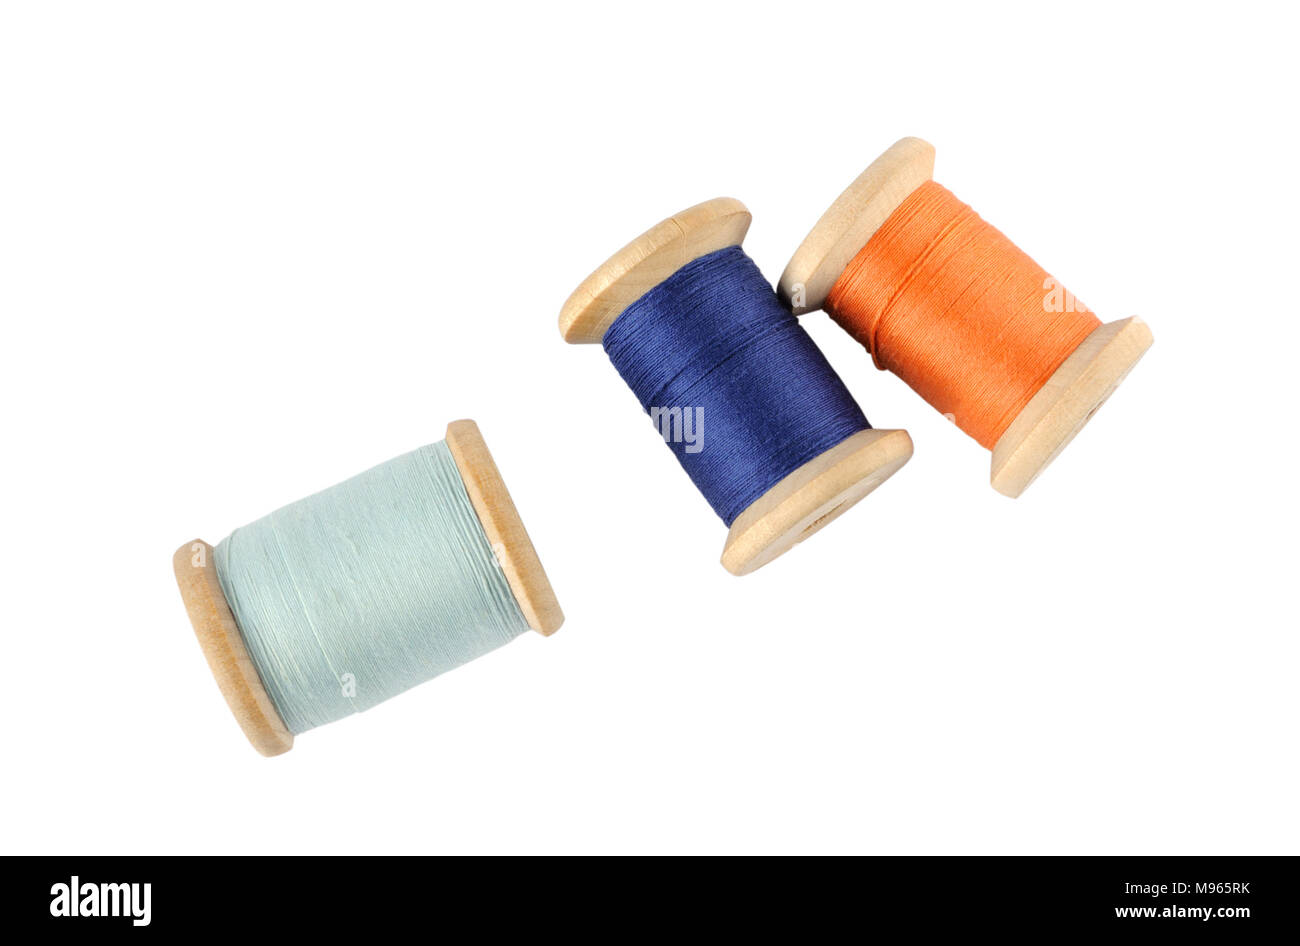 A wooden reels of thread on white background - Stock Image